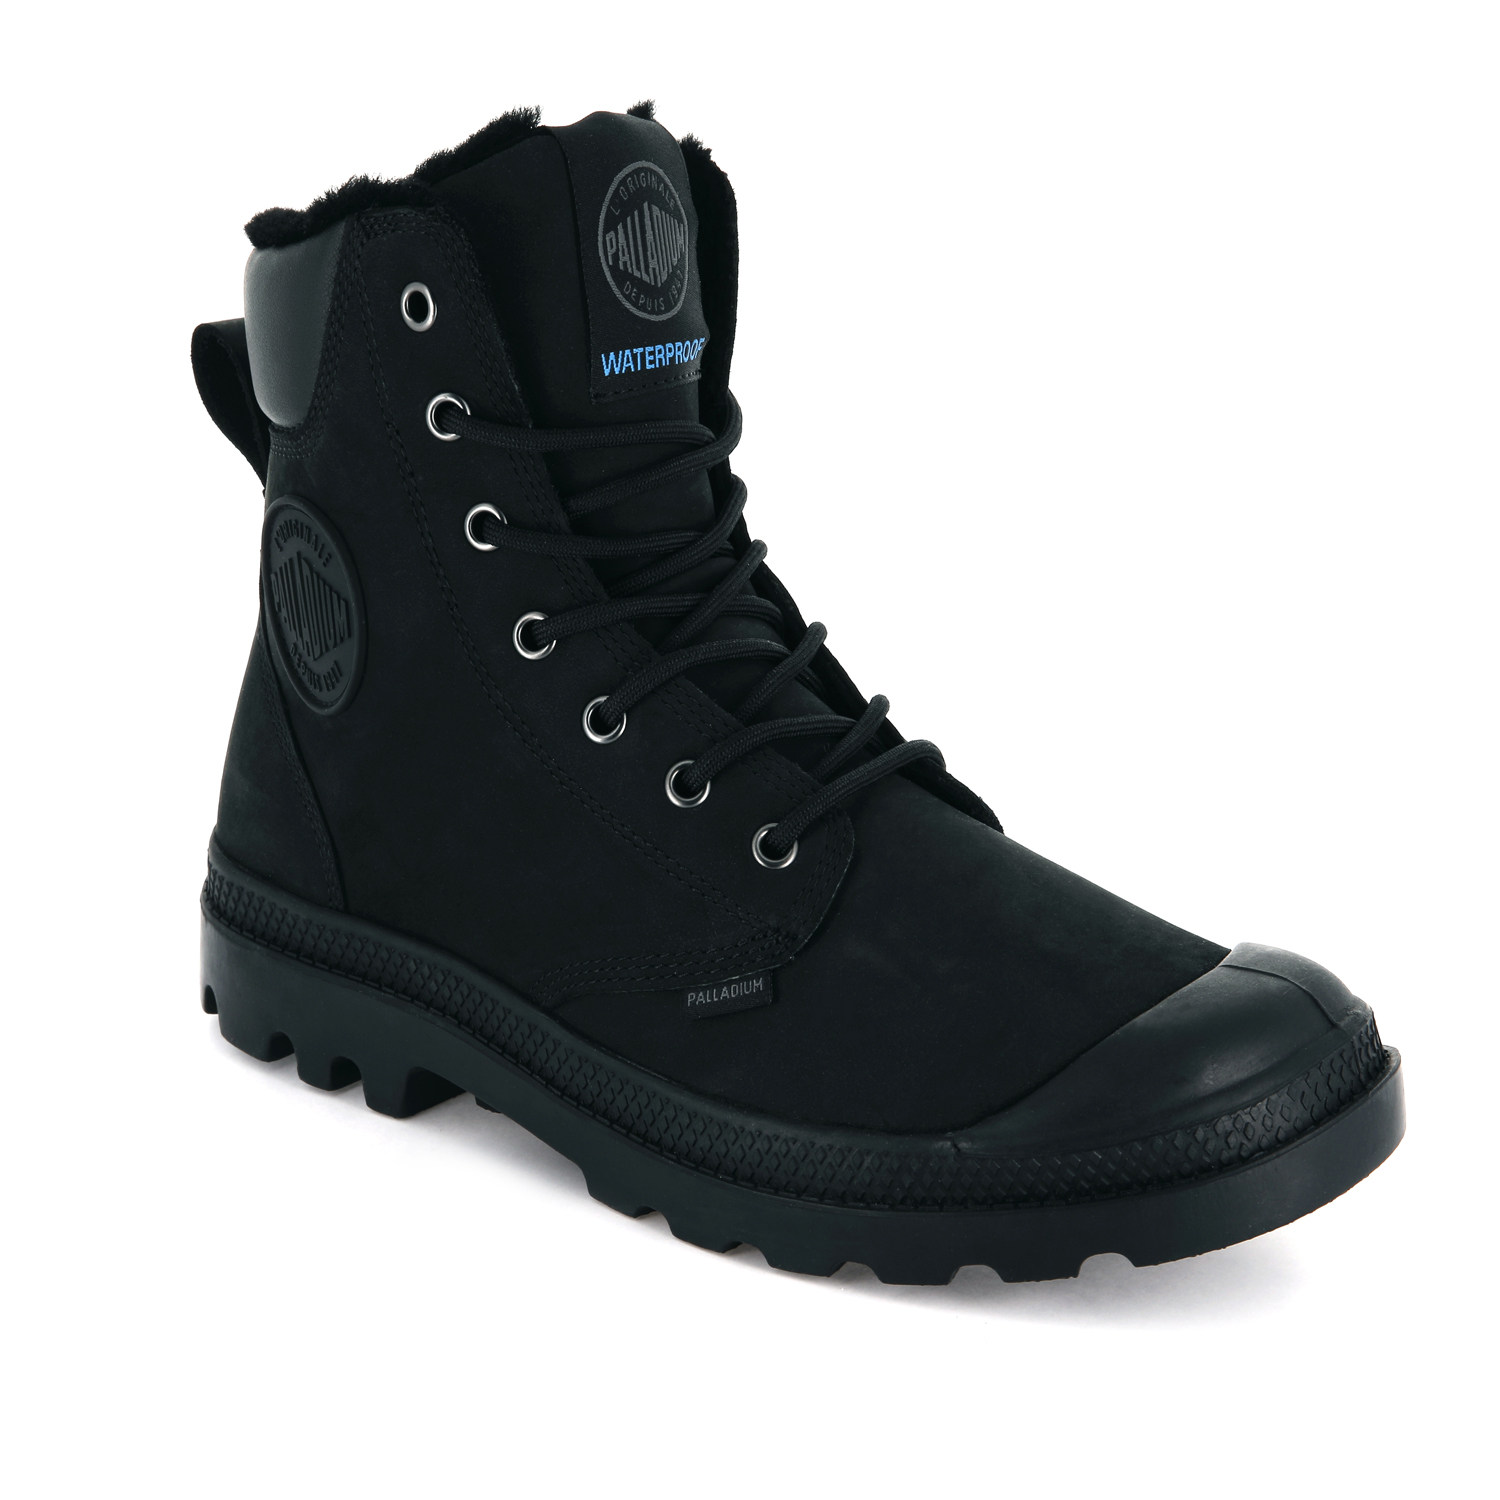 Palladium-Mens-Pampa-Sport-Cuff-Waterproof-Suede-Leather-Shoe-Wool-Lined-Boots thumbnail 4